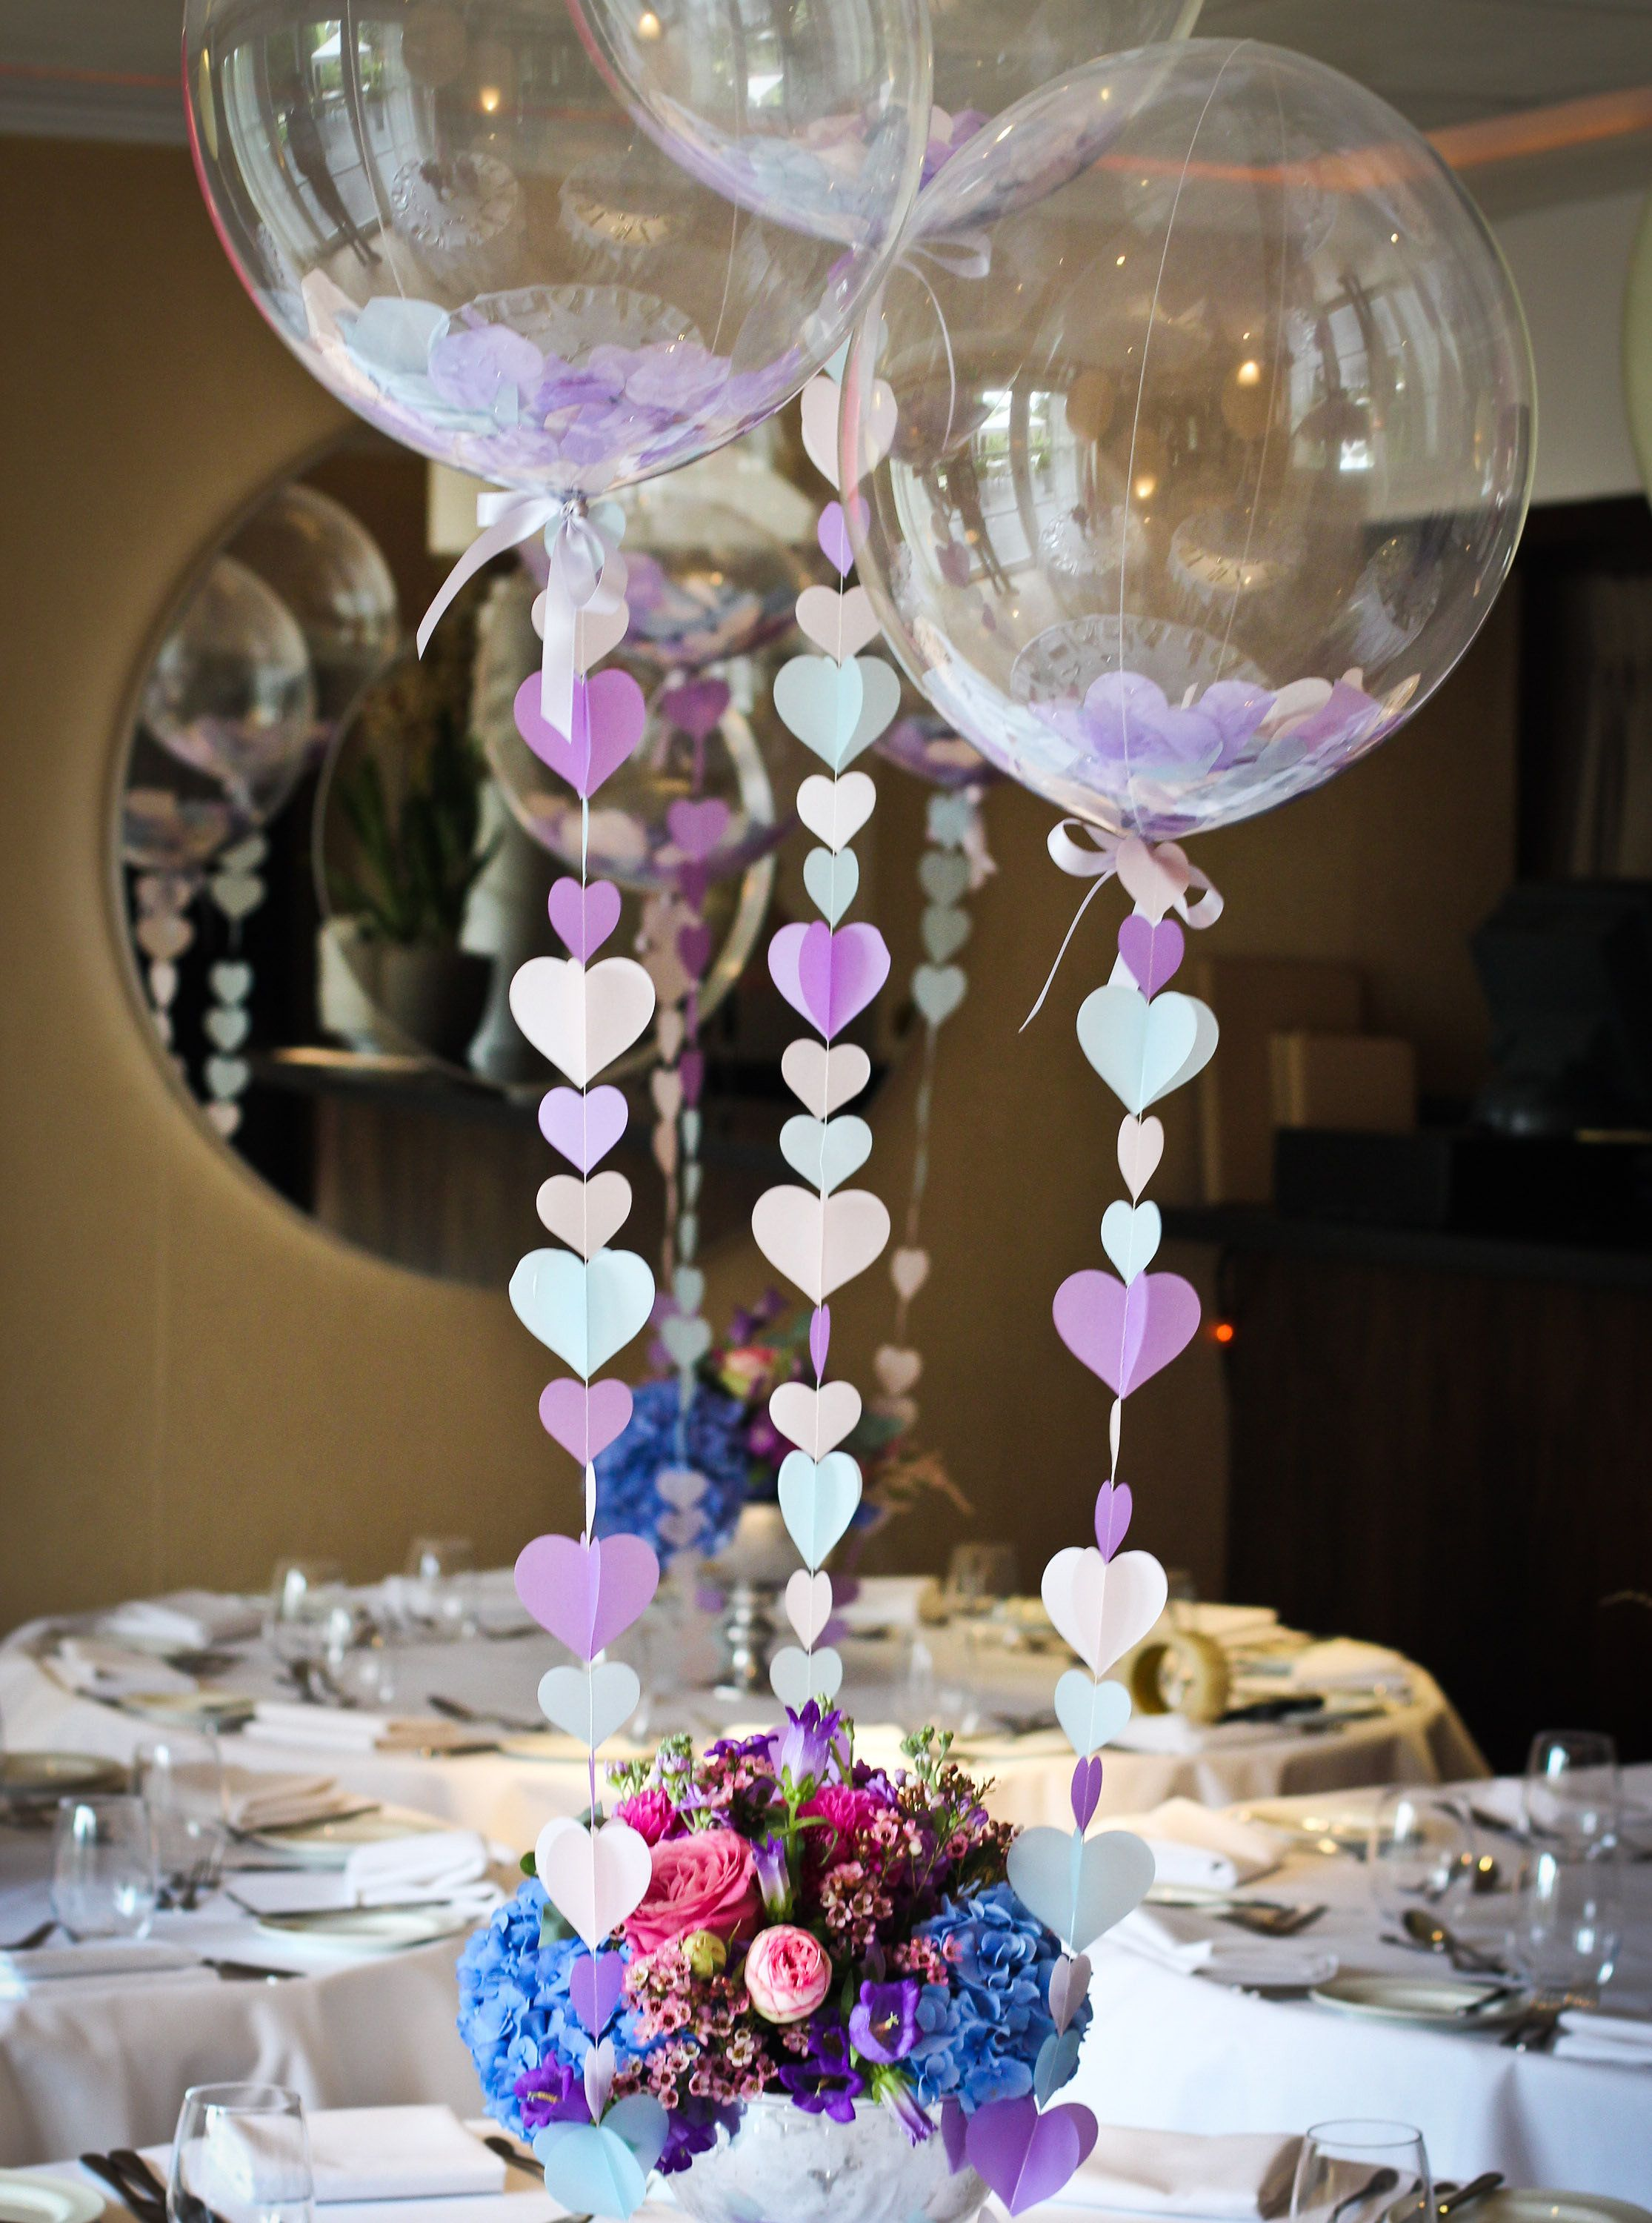 balloon centrepiece table decoration with heart strings for a wedding anniversary party. Black Bedroom Furniture Sets. Home Design Ideas